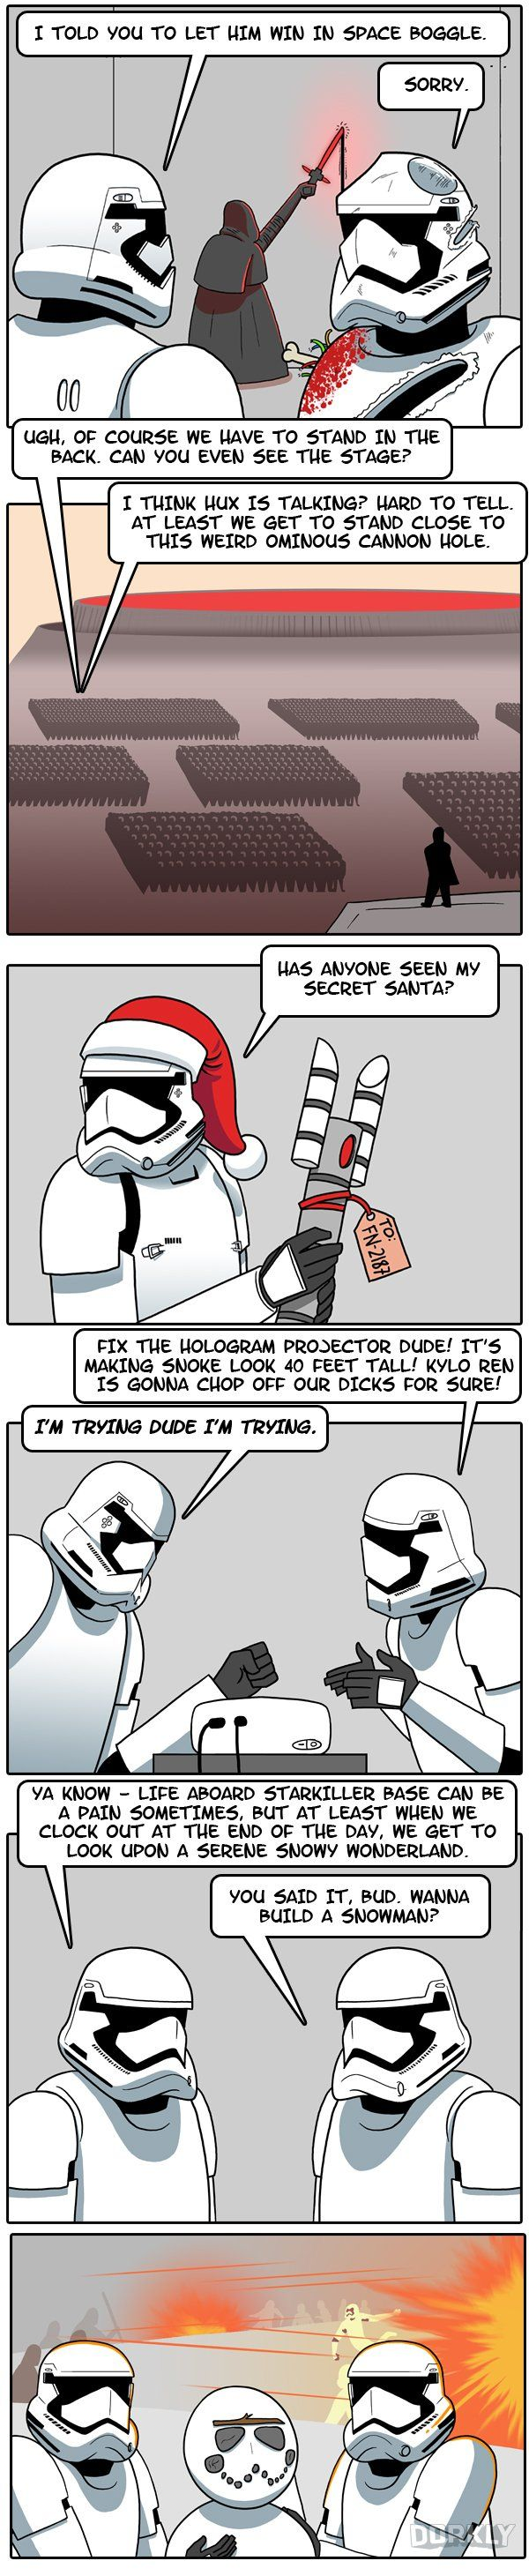 Comic From Dorkly, The Shi*(&ty Life Of Every Stormtrooper.